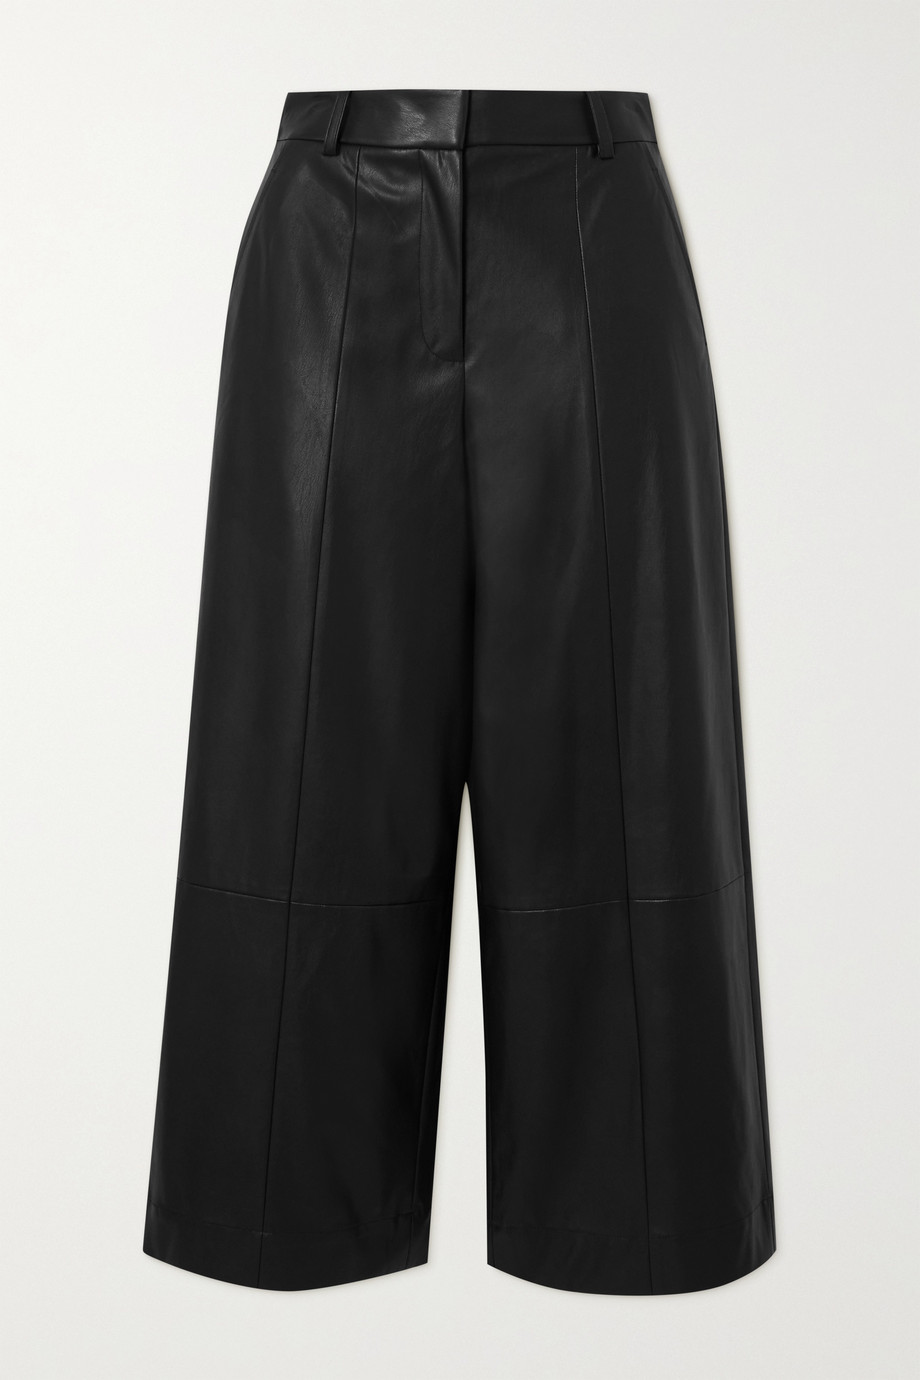 Jason Wu Belted faux leather wide-leg pants